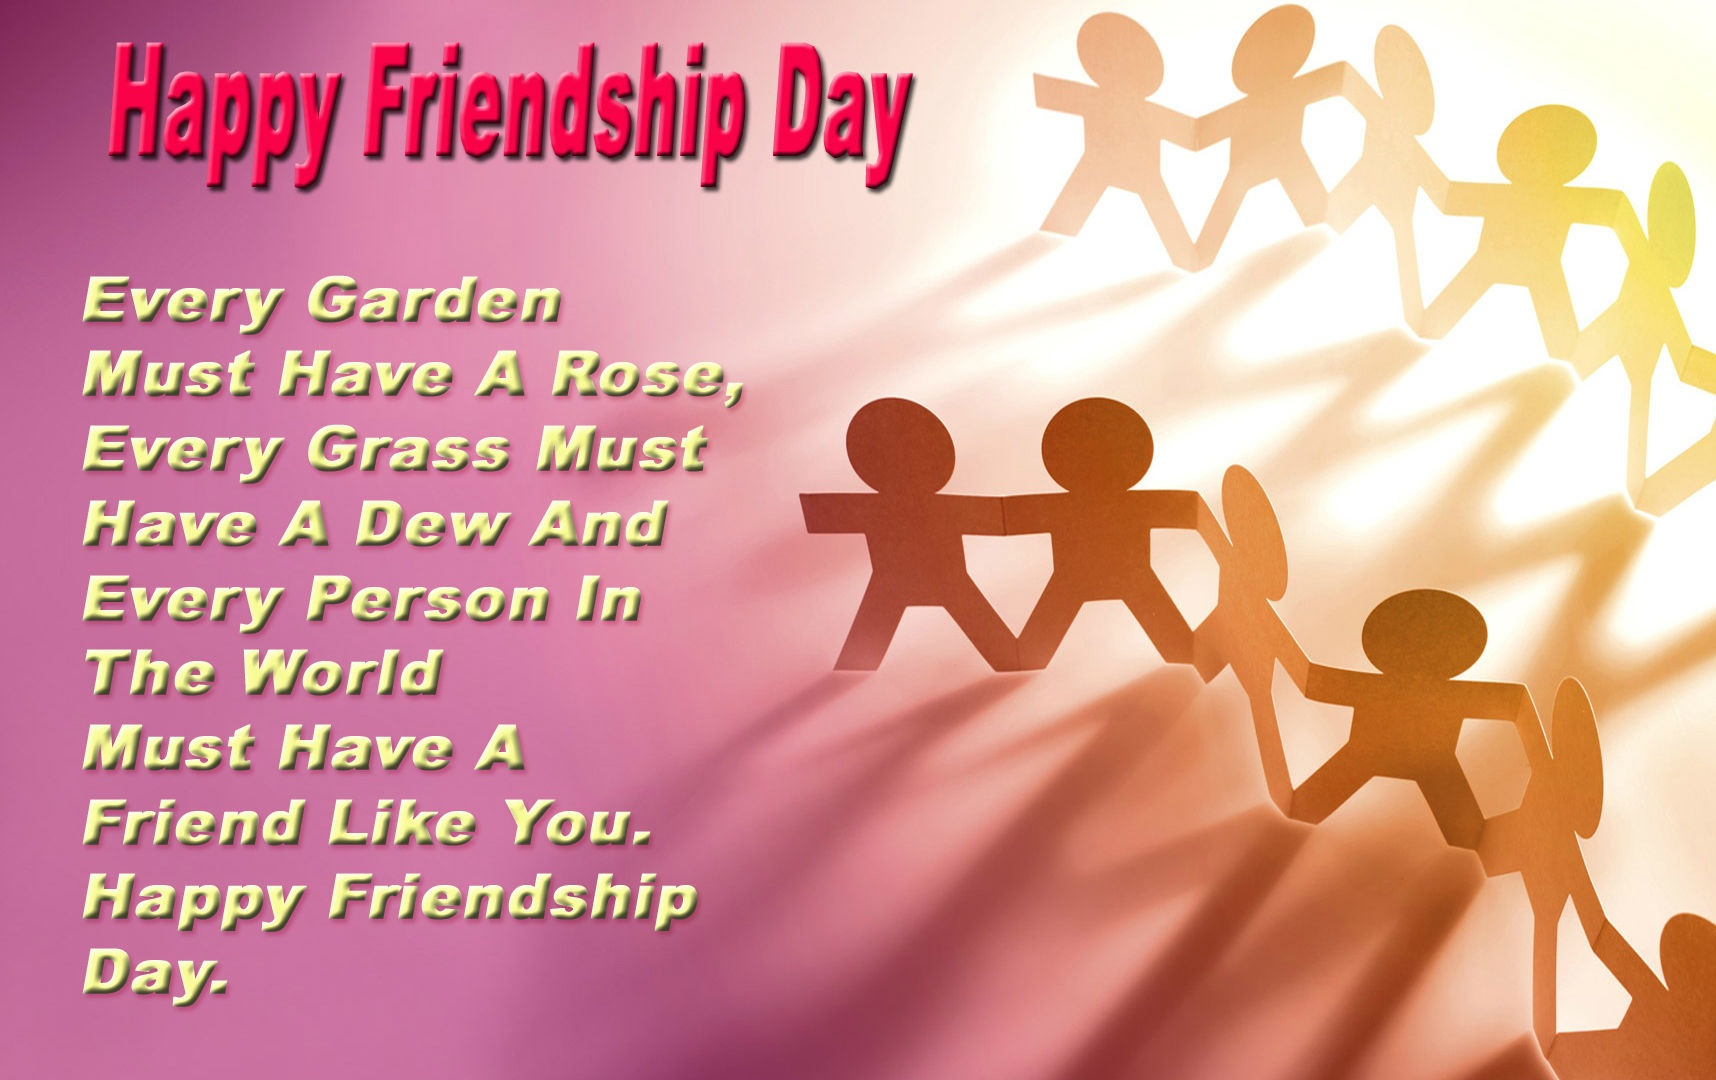 Happy Friendship Day Quotes For Friends